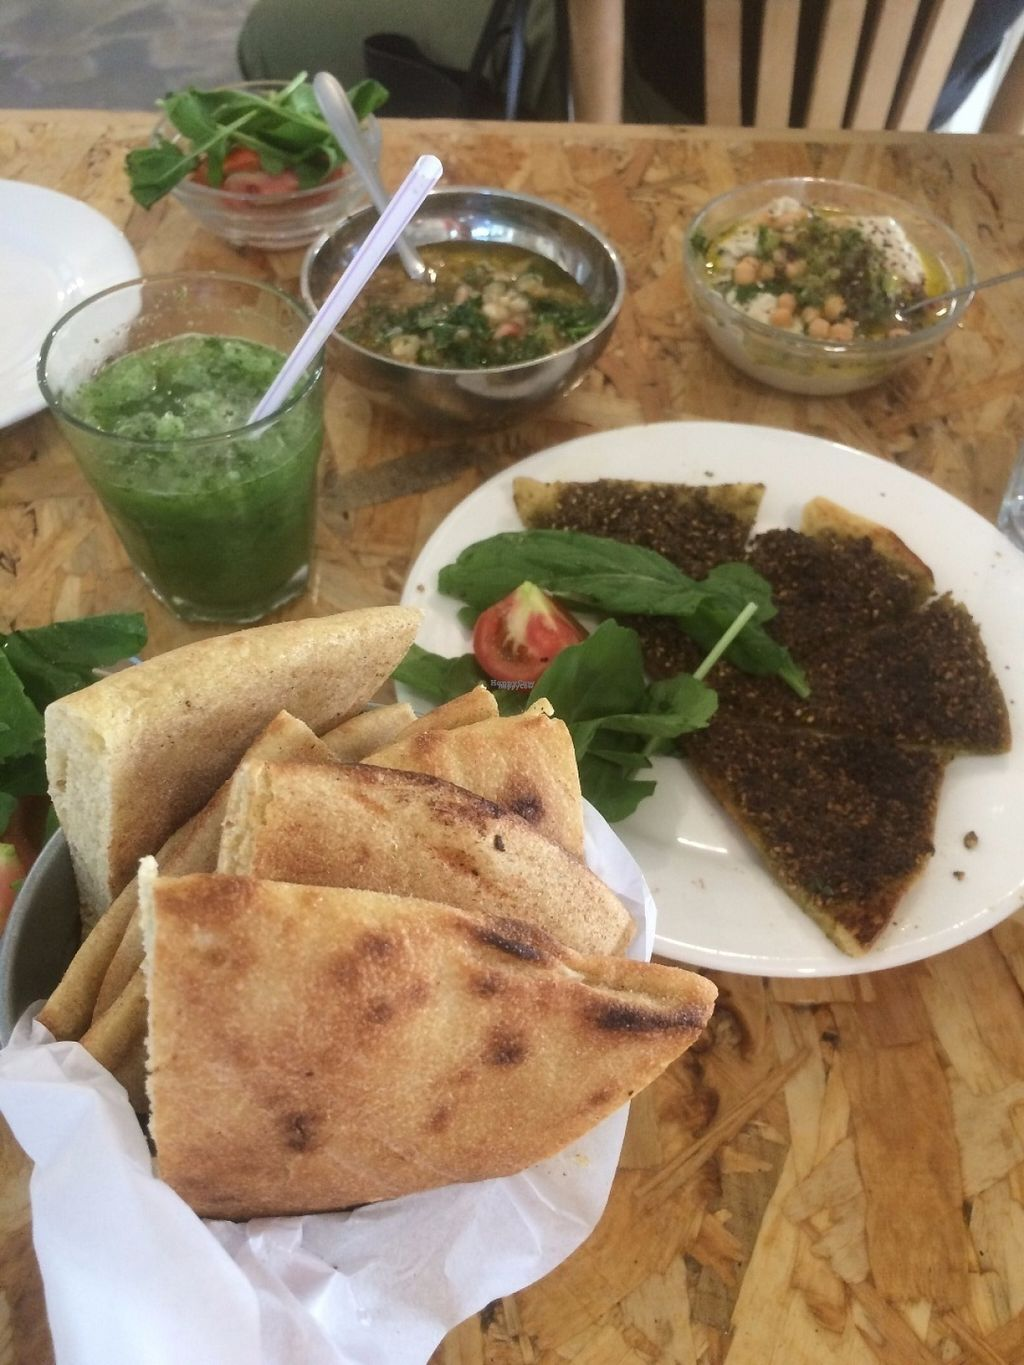 "Photo of Shams El Balad Cafe  by <a href=""/members/profile/strickvl"">strickvl</a> <br/>Za3tar bread, hummus, baba ghanoush and bread (and lemon & mint juice) <br/> August 20, 2016  - <a href='/contact/abuse/image/65293/170226'>Report</a>"